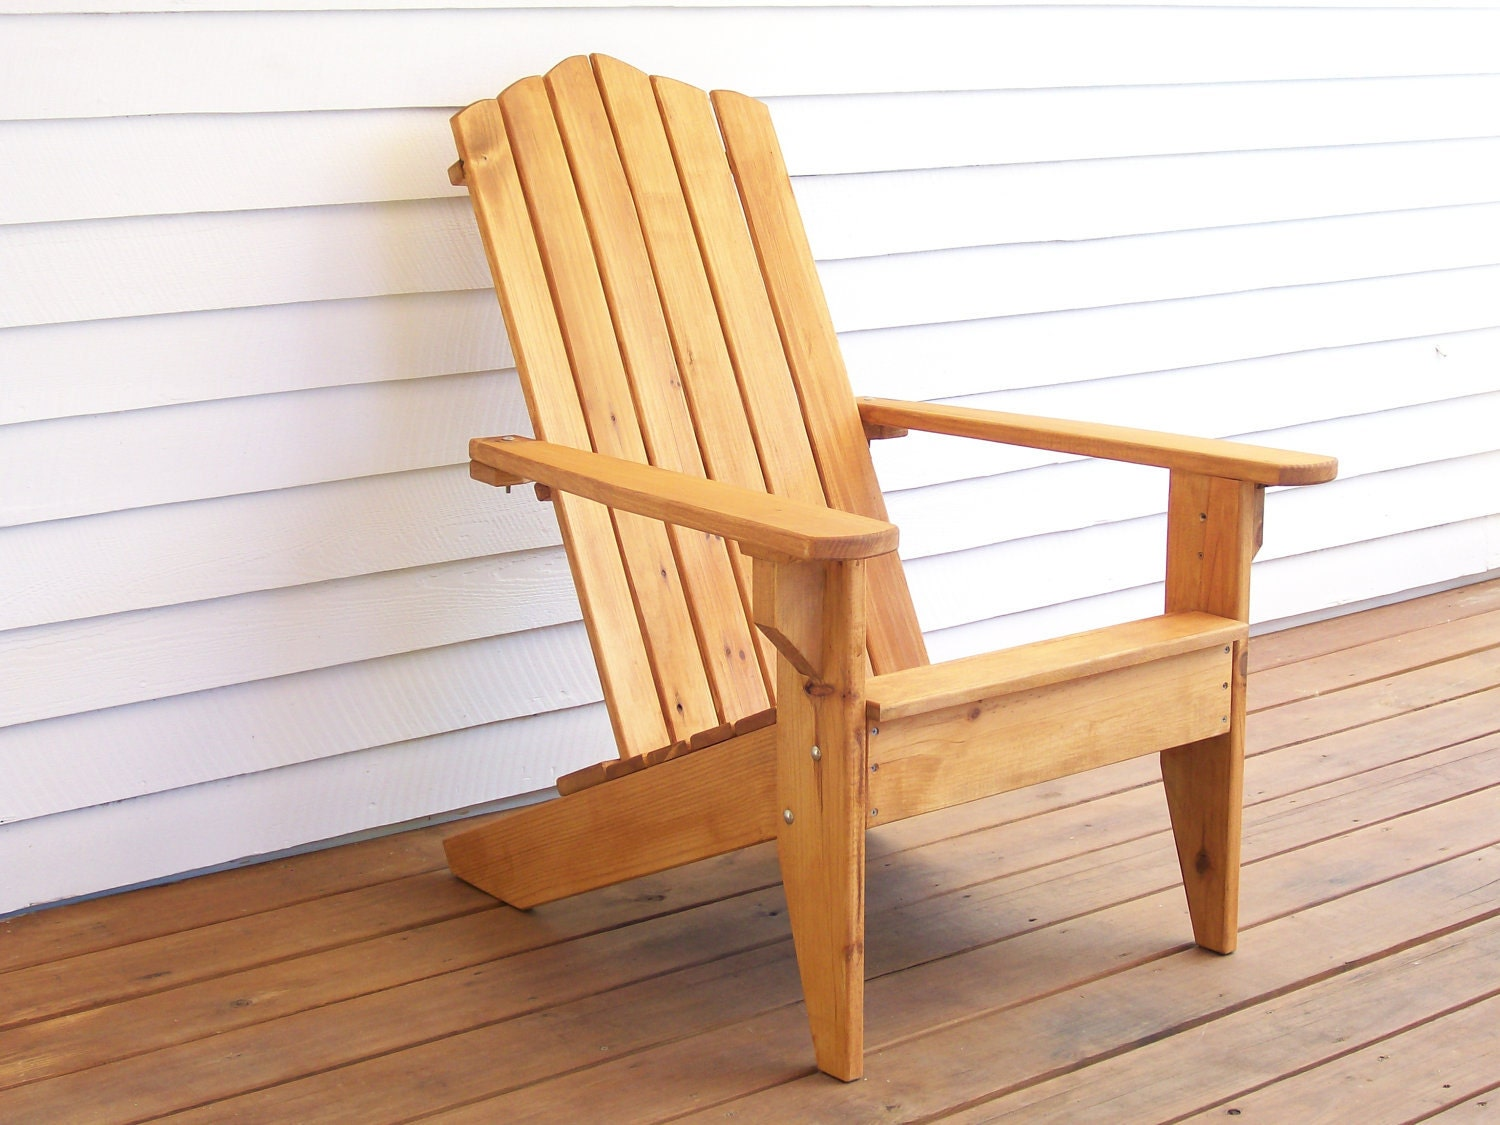 Adirondack wood chair adirondack furniture outdoor wood for Wooden furniture